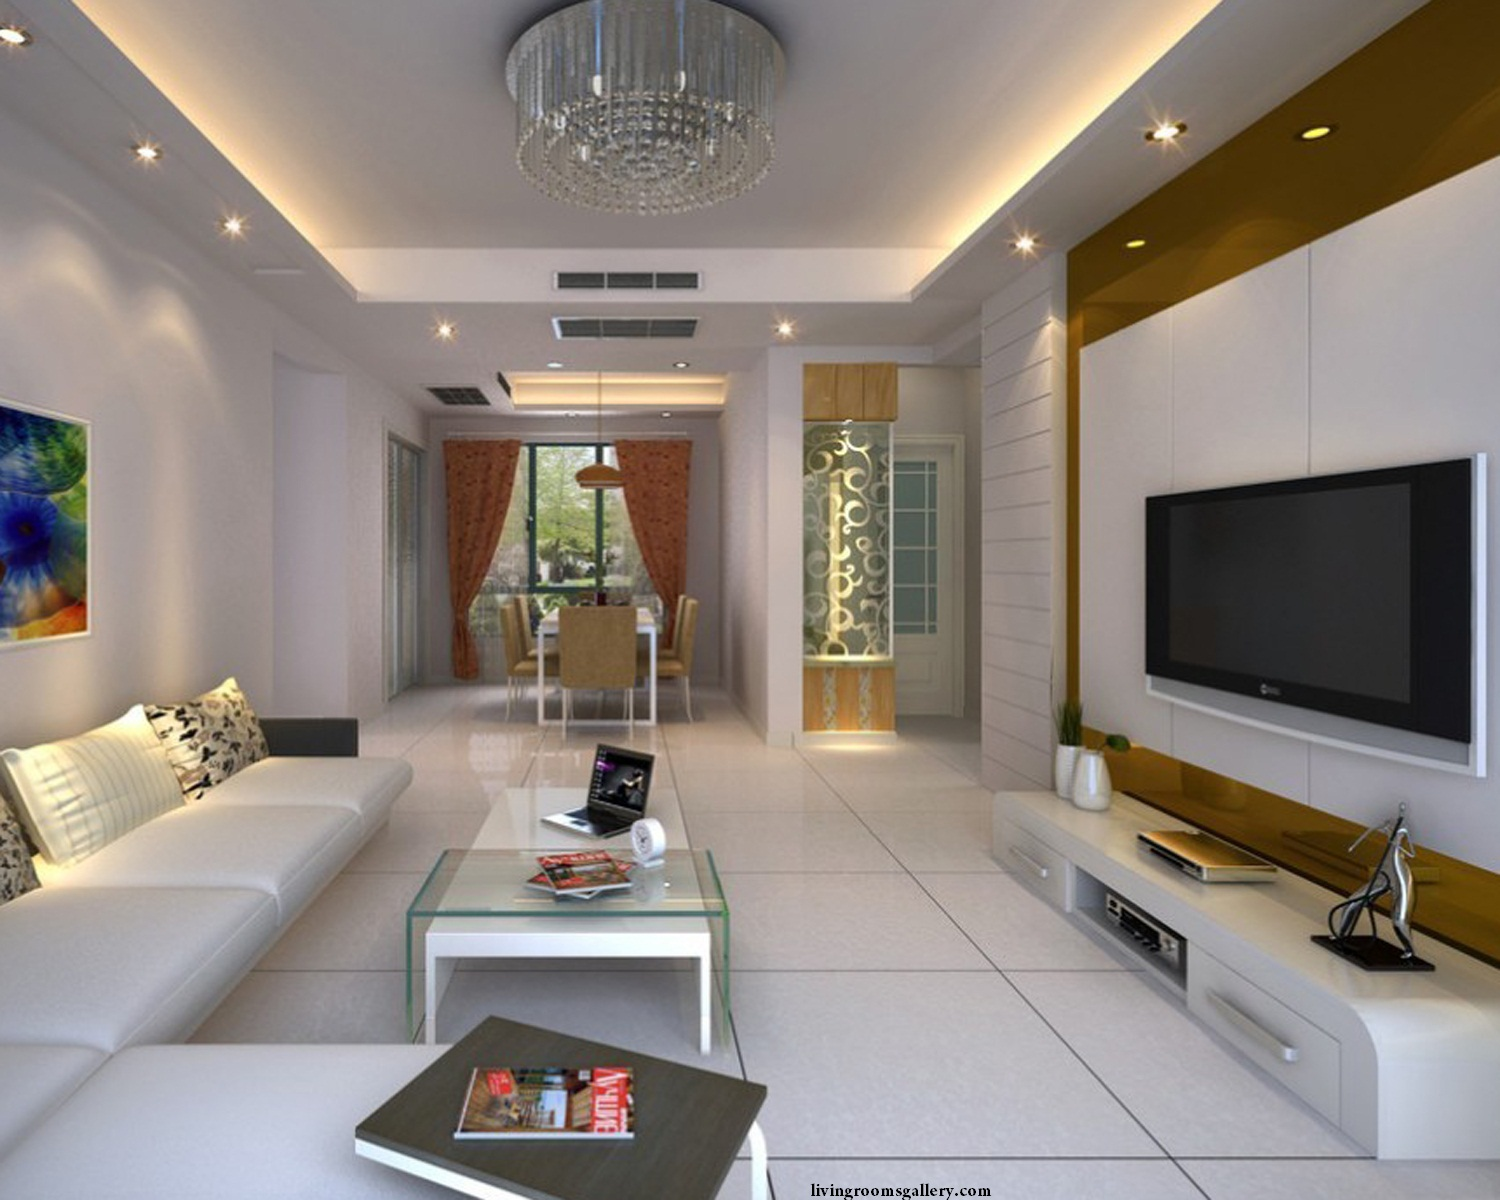 25 Pop False Ceiling Designs with LED Ceiling Lighting ...